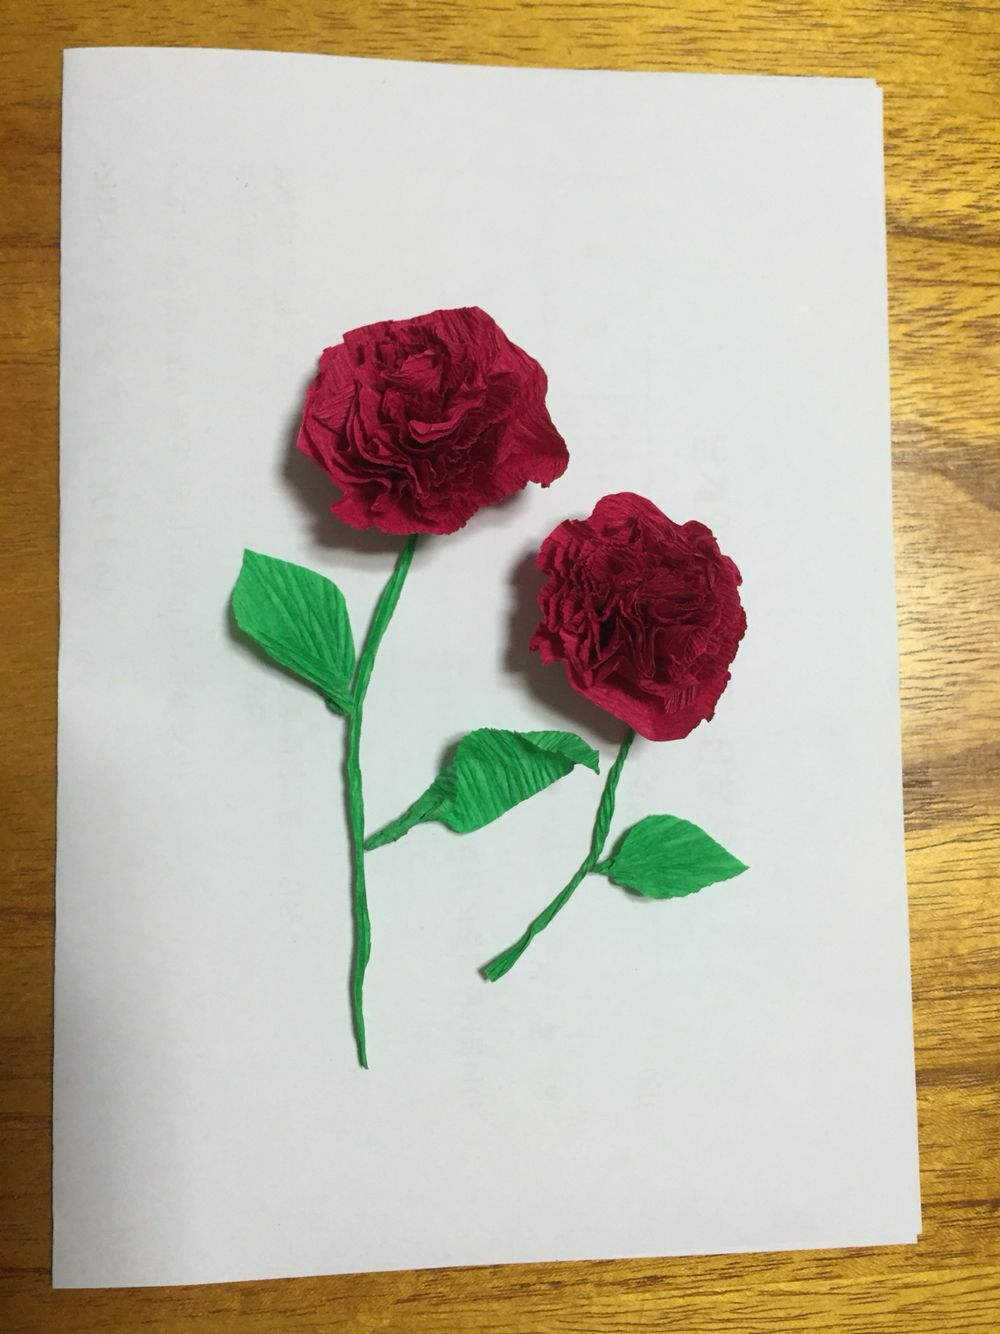 Carnation flowers easy thank you or mothers day card made of carnation flowers easy thank you or mothers day card made of tissue paper flower directions layer 6 8 pieces of paper staple an x in the center mightylinksfo Choice Image